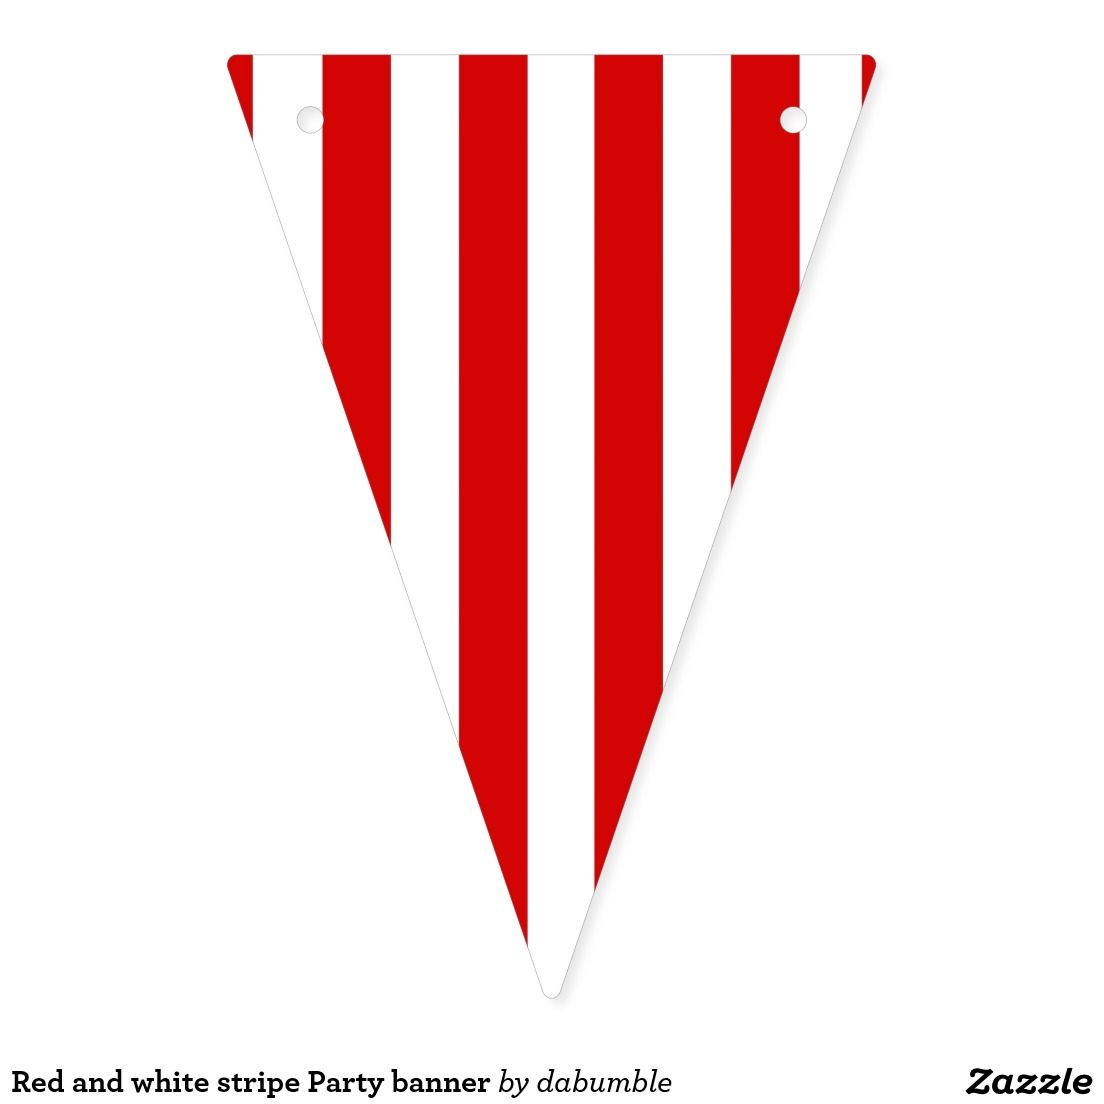 Red And White Stripe Party Banner Zazzle Com In 2020 Stripes Party Party Banner Red And White Stripes